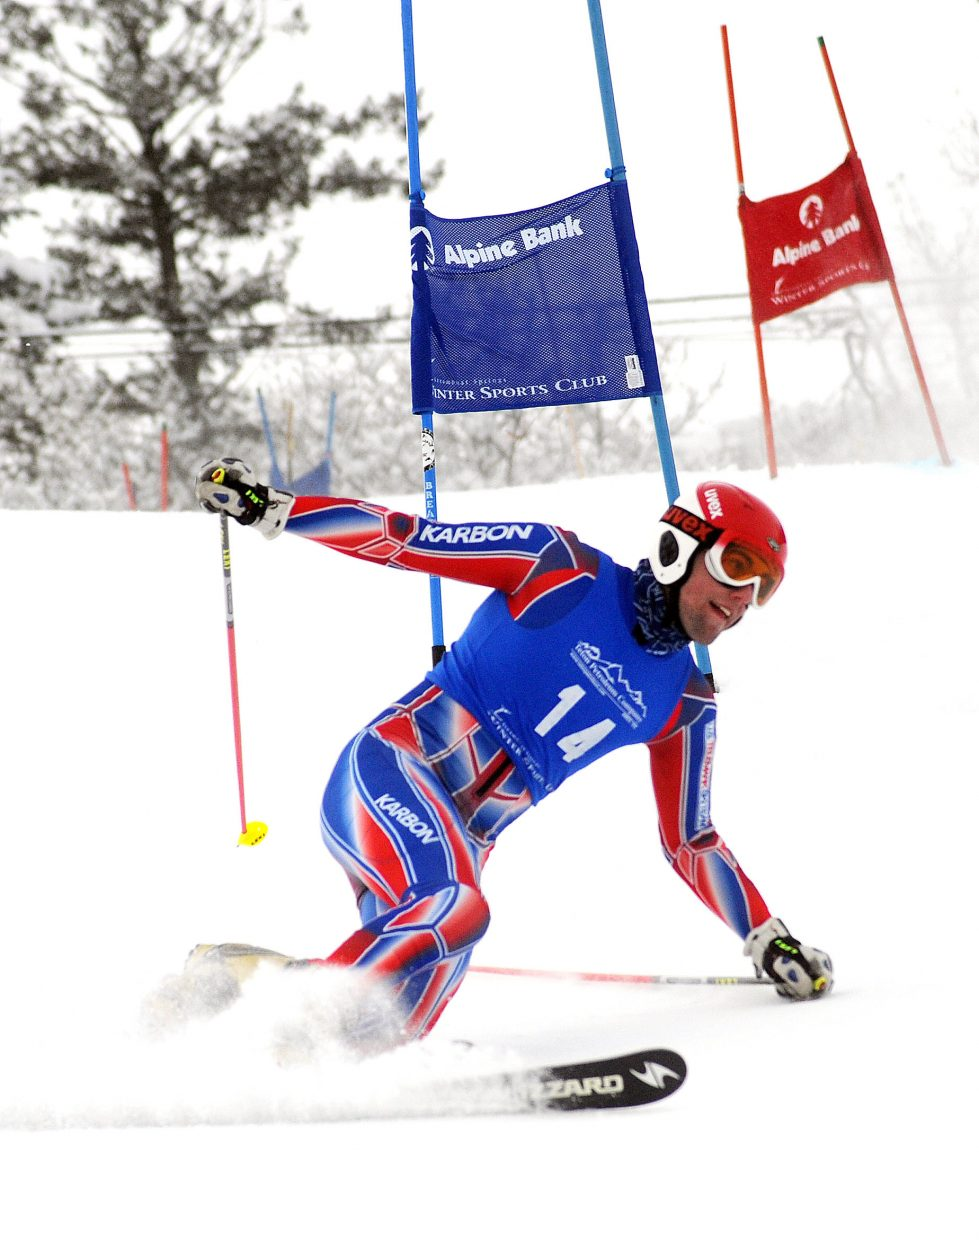 Cory Snyder skis Friday in a sprint classic Telemark event in Steamboat Springs.